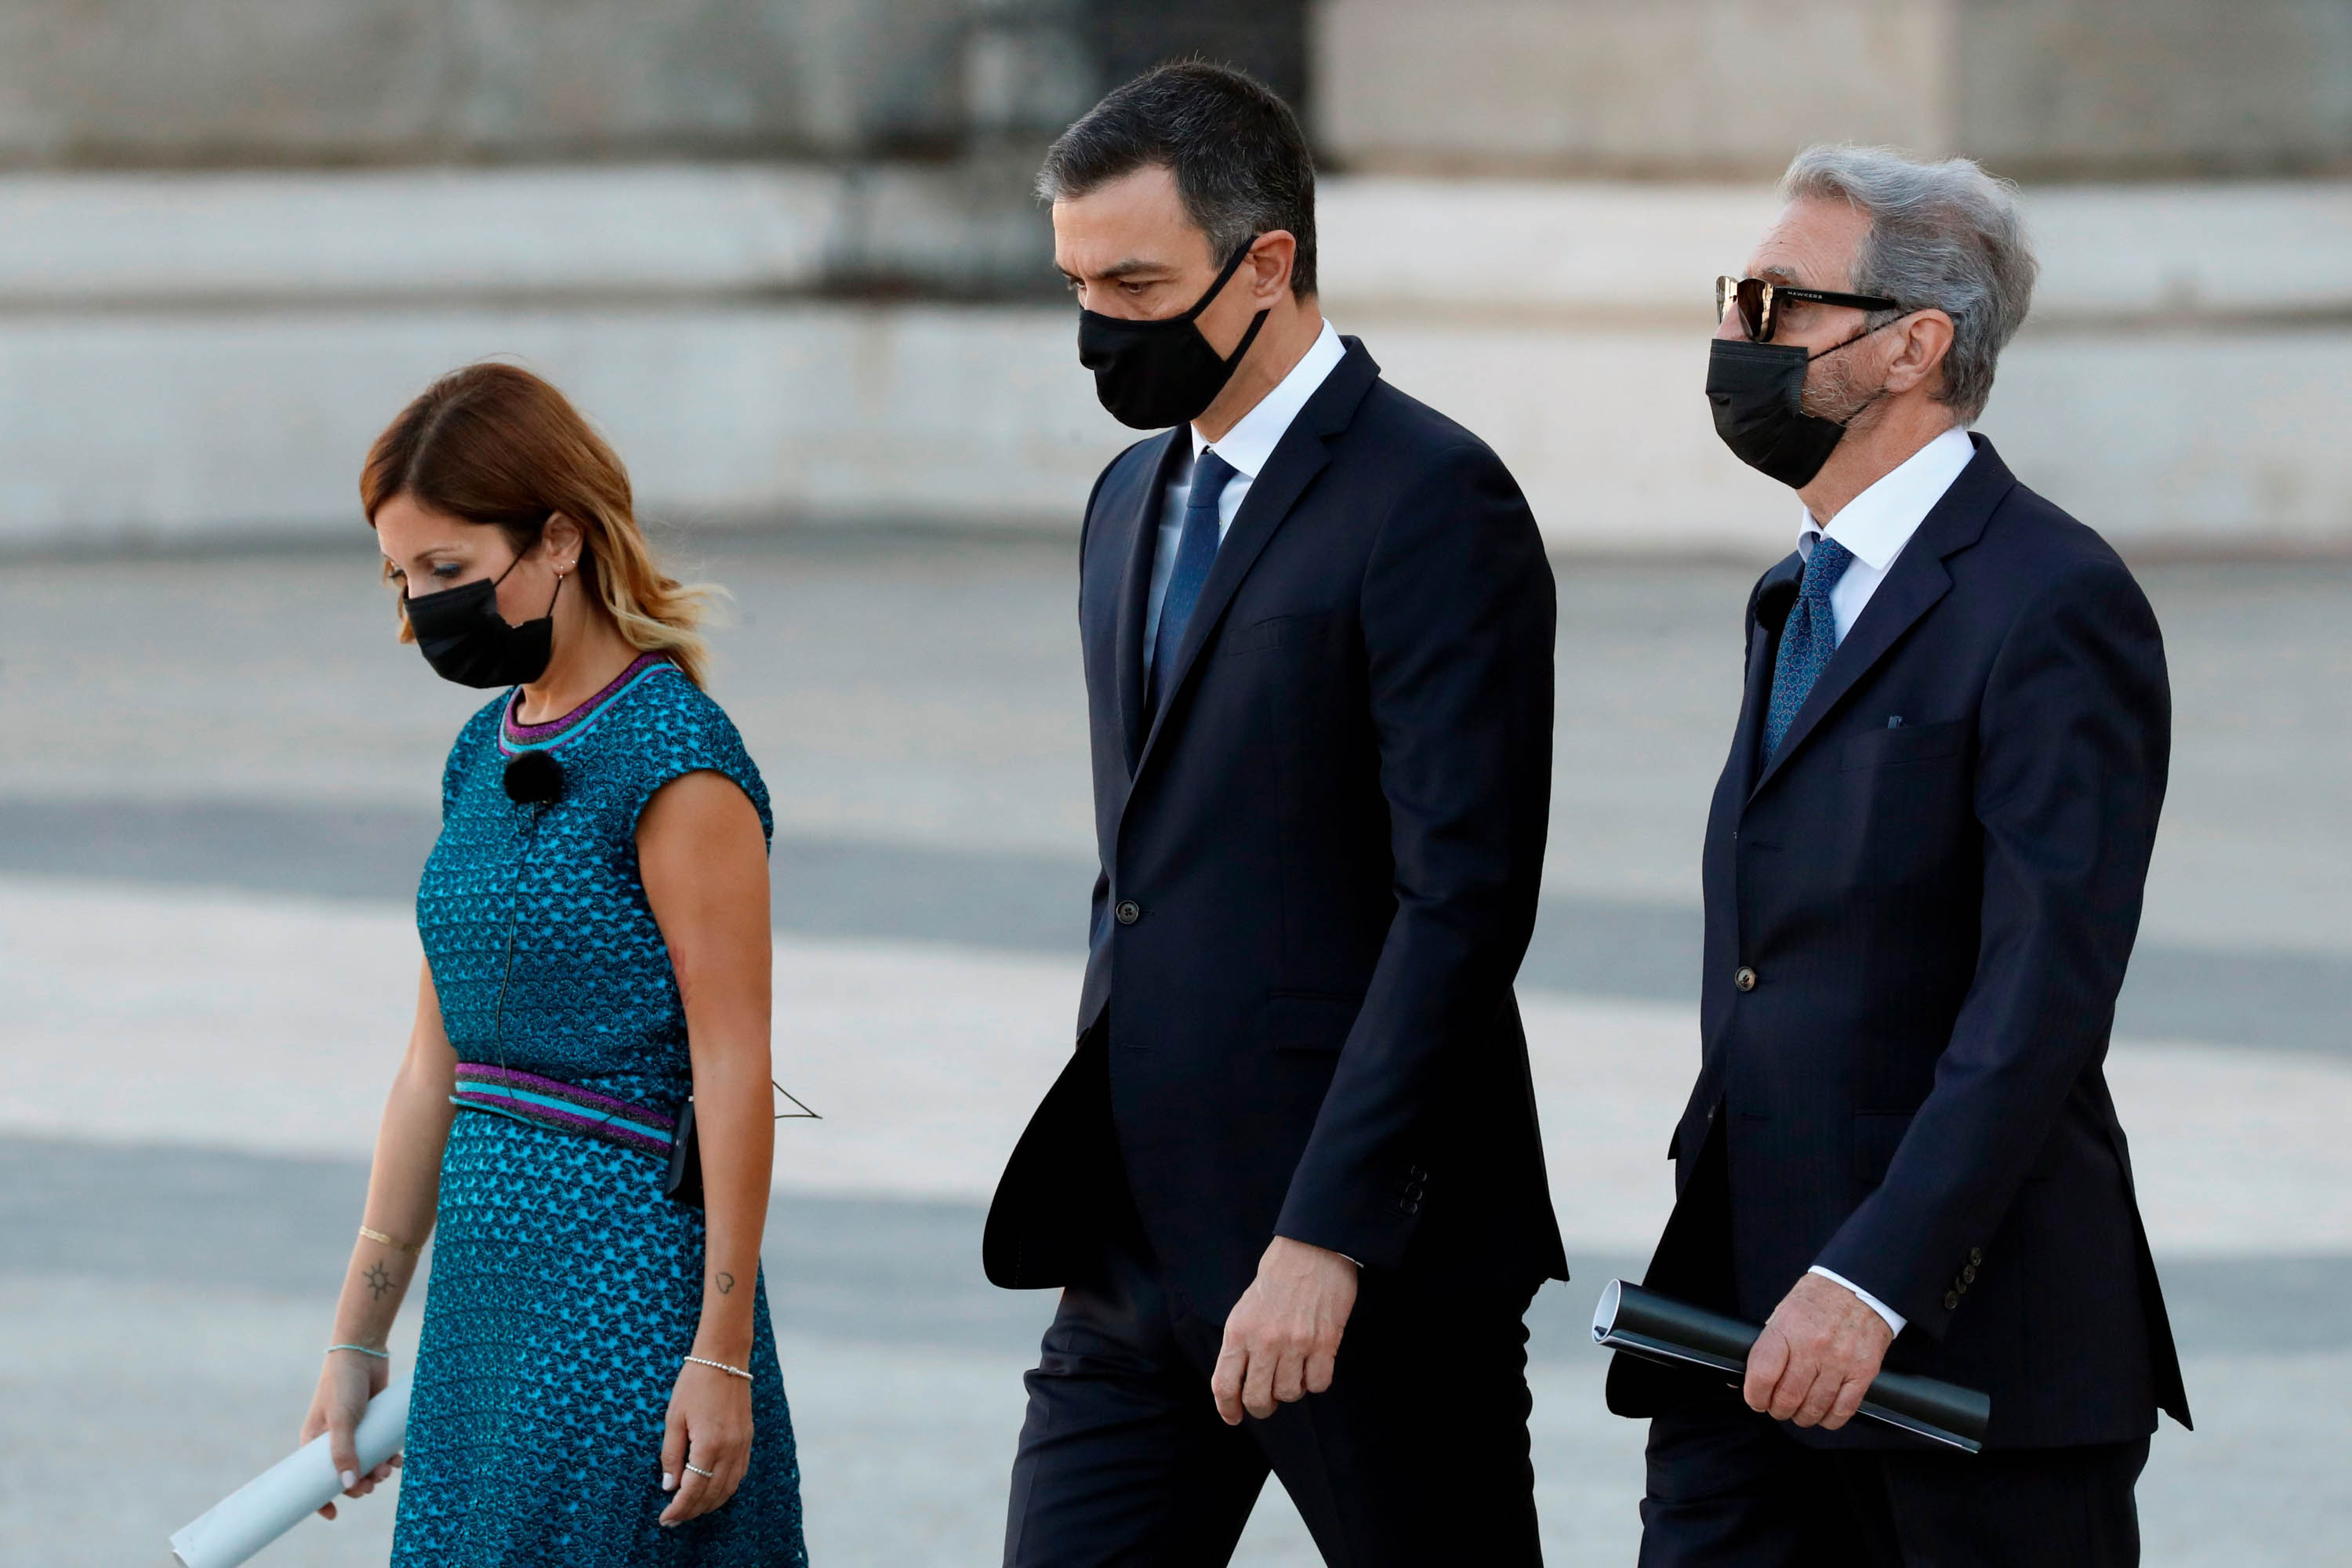 Spanish Prime Minister Pedro Sanchez, center, arrives at the ceremony in Madrid flanked by Catalan nurse Aroa Lopez, left, and Hernando Calleja, the brother of Spanish journalist José María Calleja, who died of Covid-19.